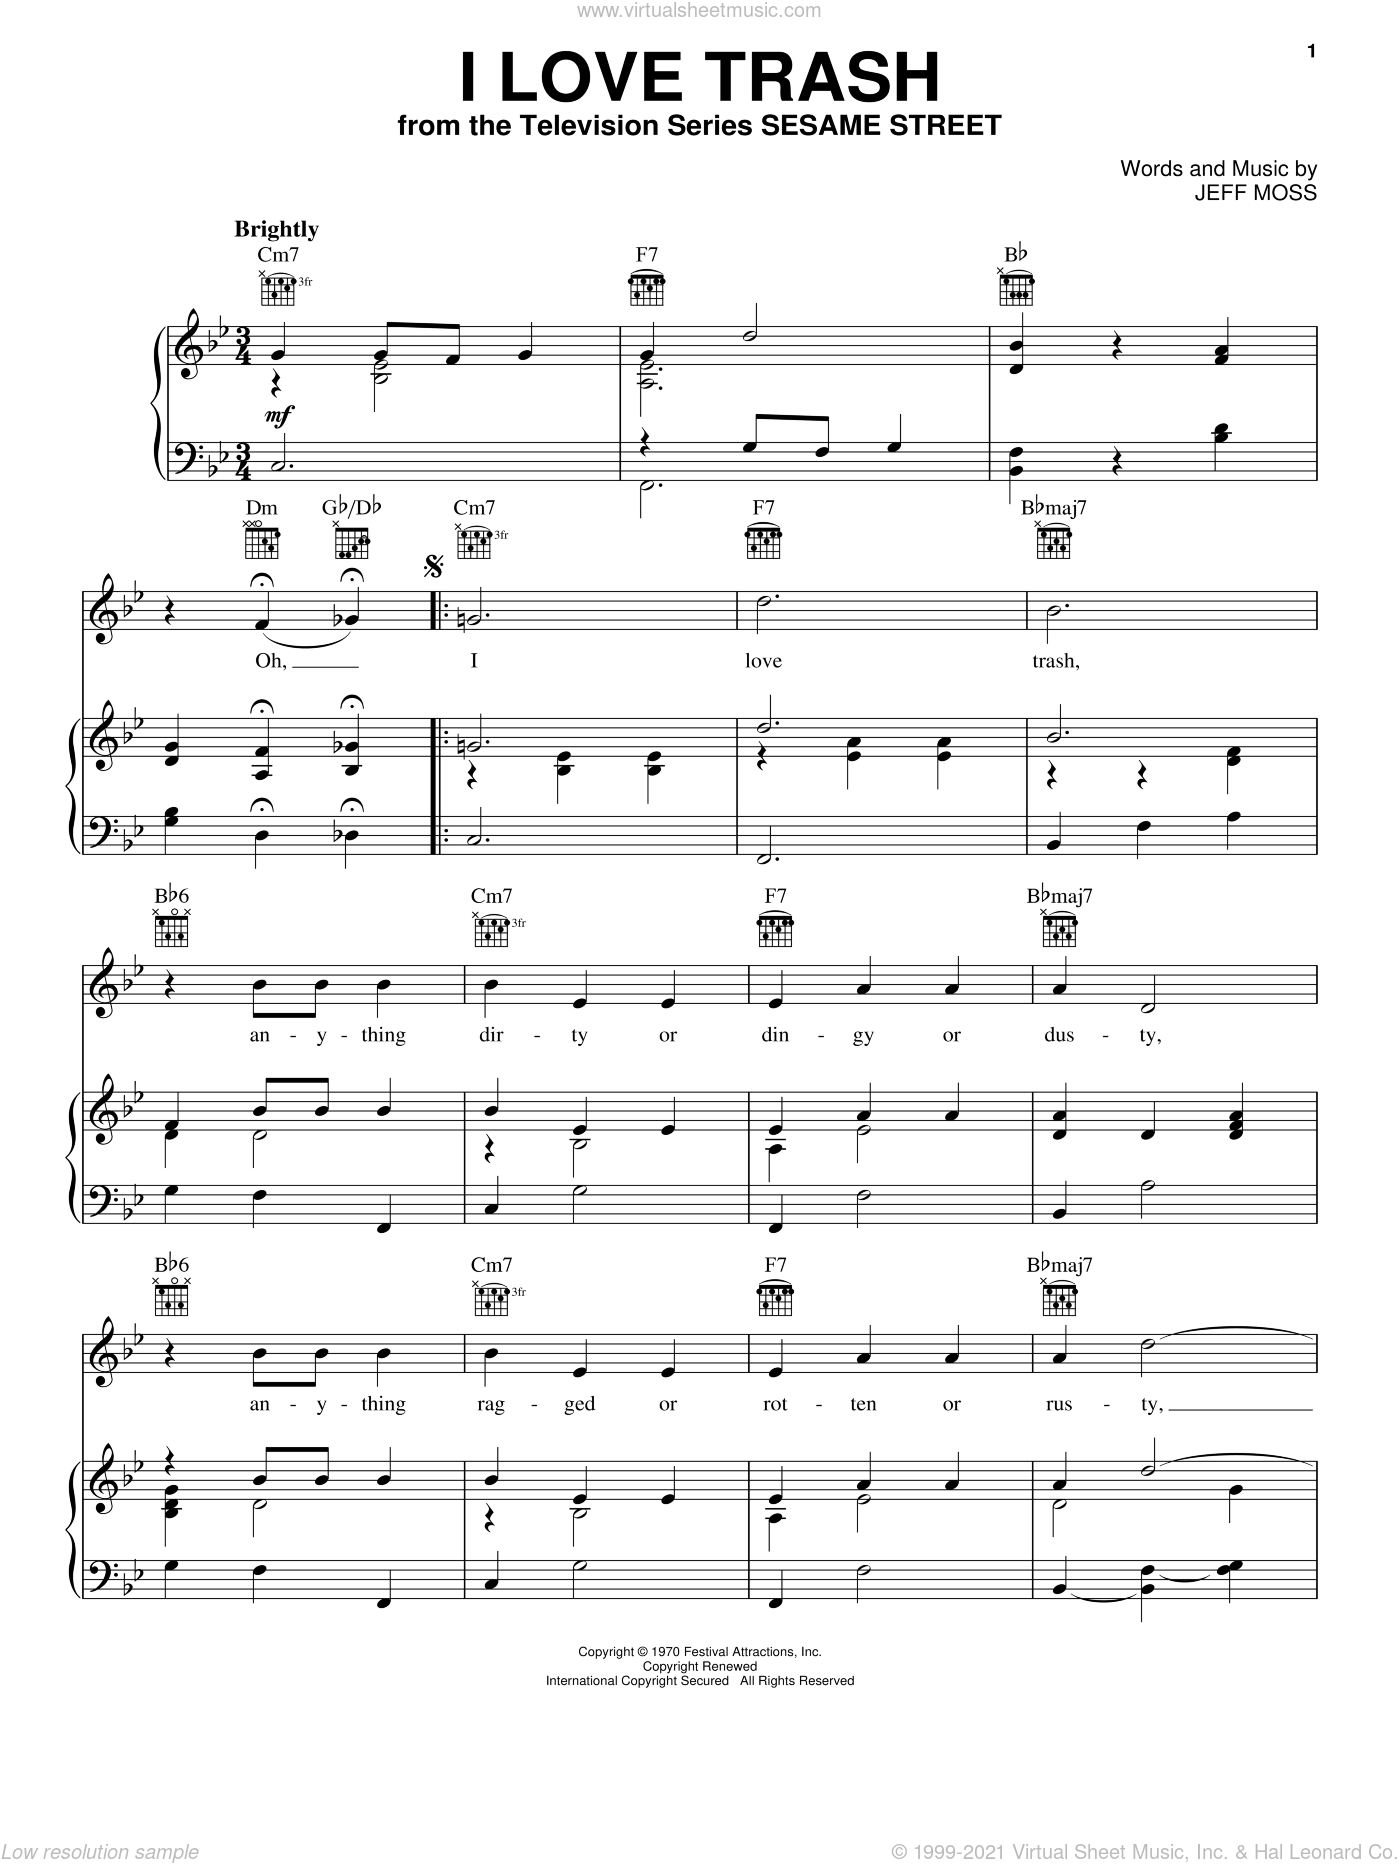 I Love Trash sheet music for voice, piano or guitar by Jeff Moss, intermediate. Score Image Preview.